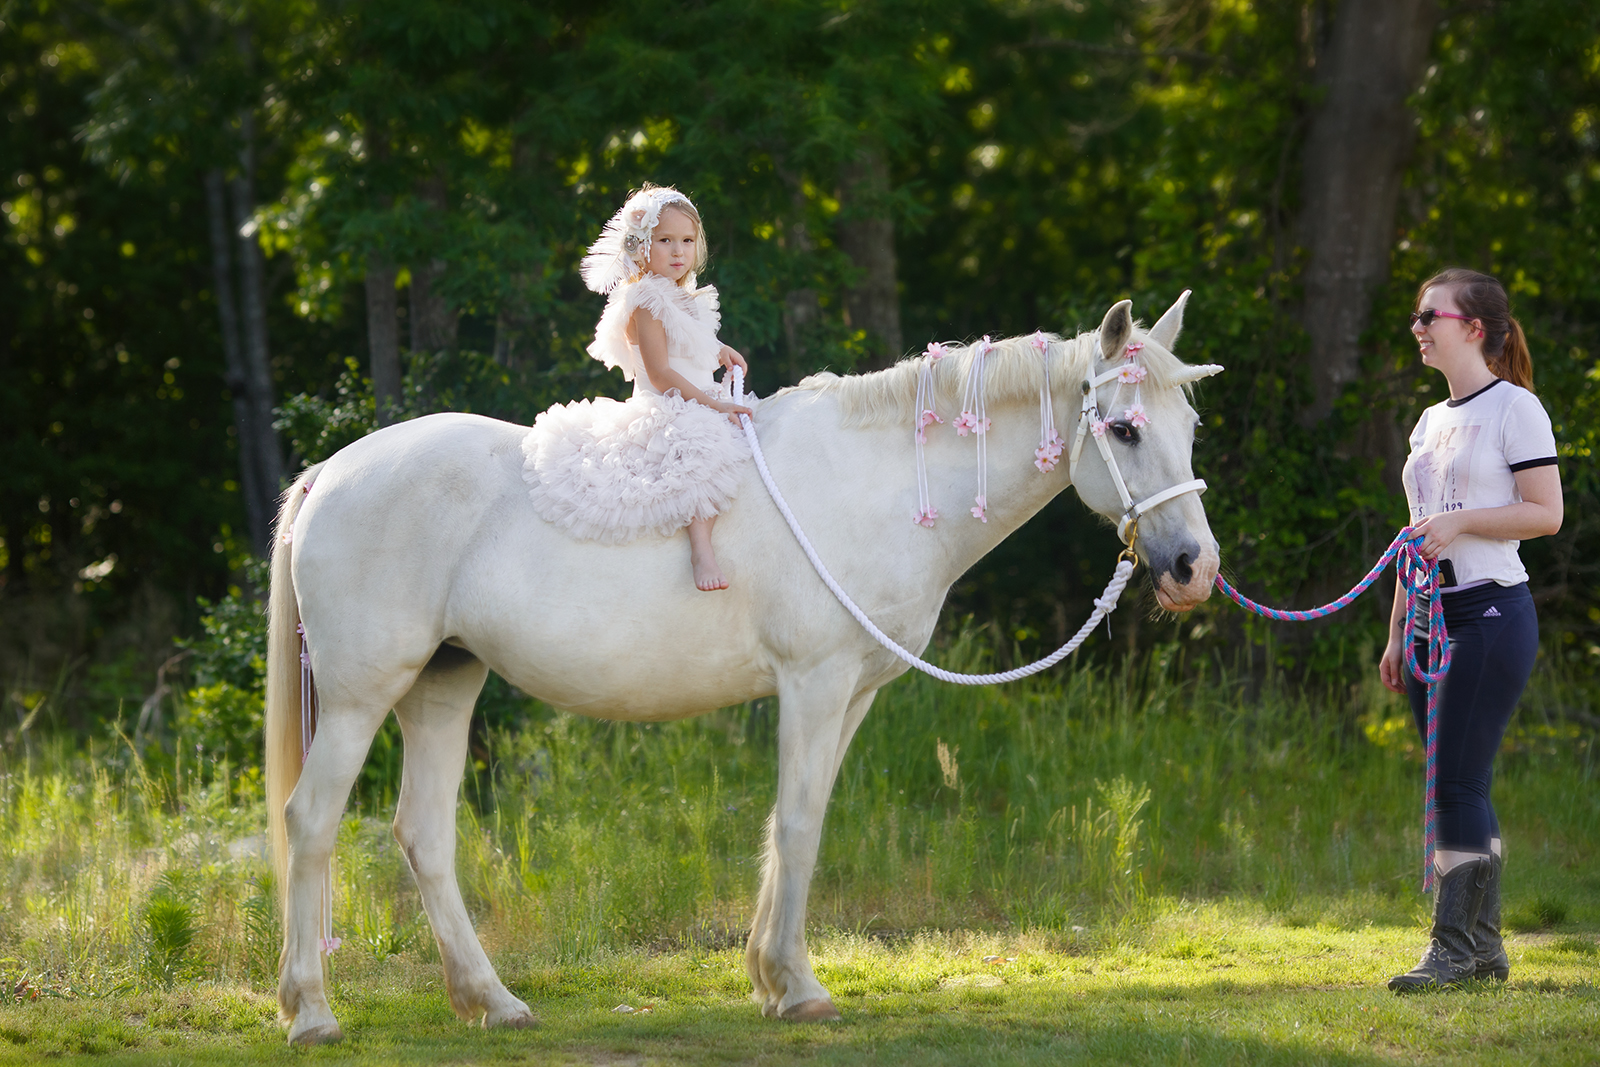 Unicorn photography in Raleigh NC